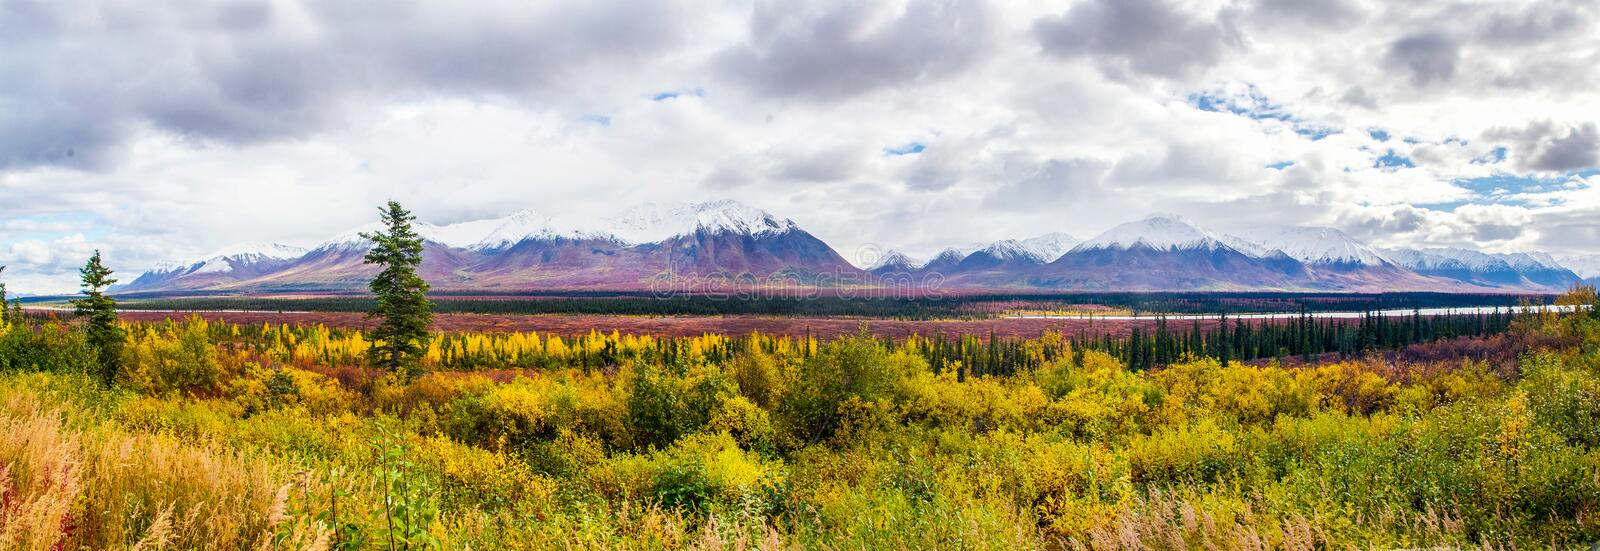 On the road to Denali National Park stock photo